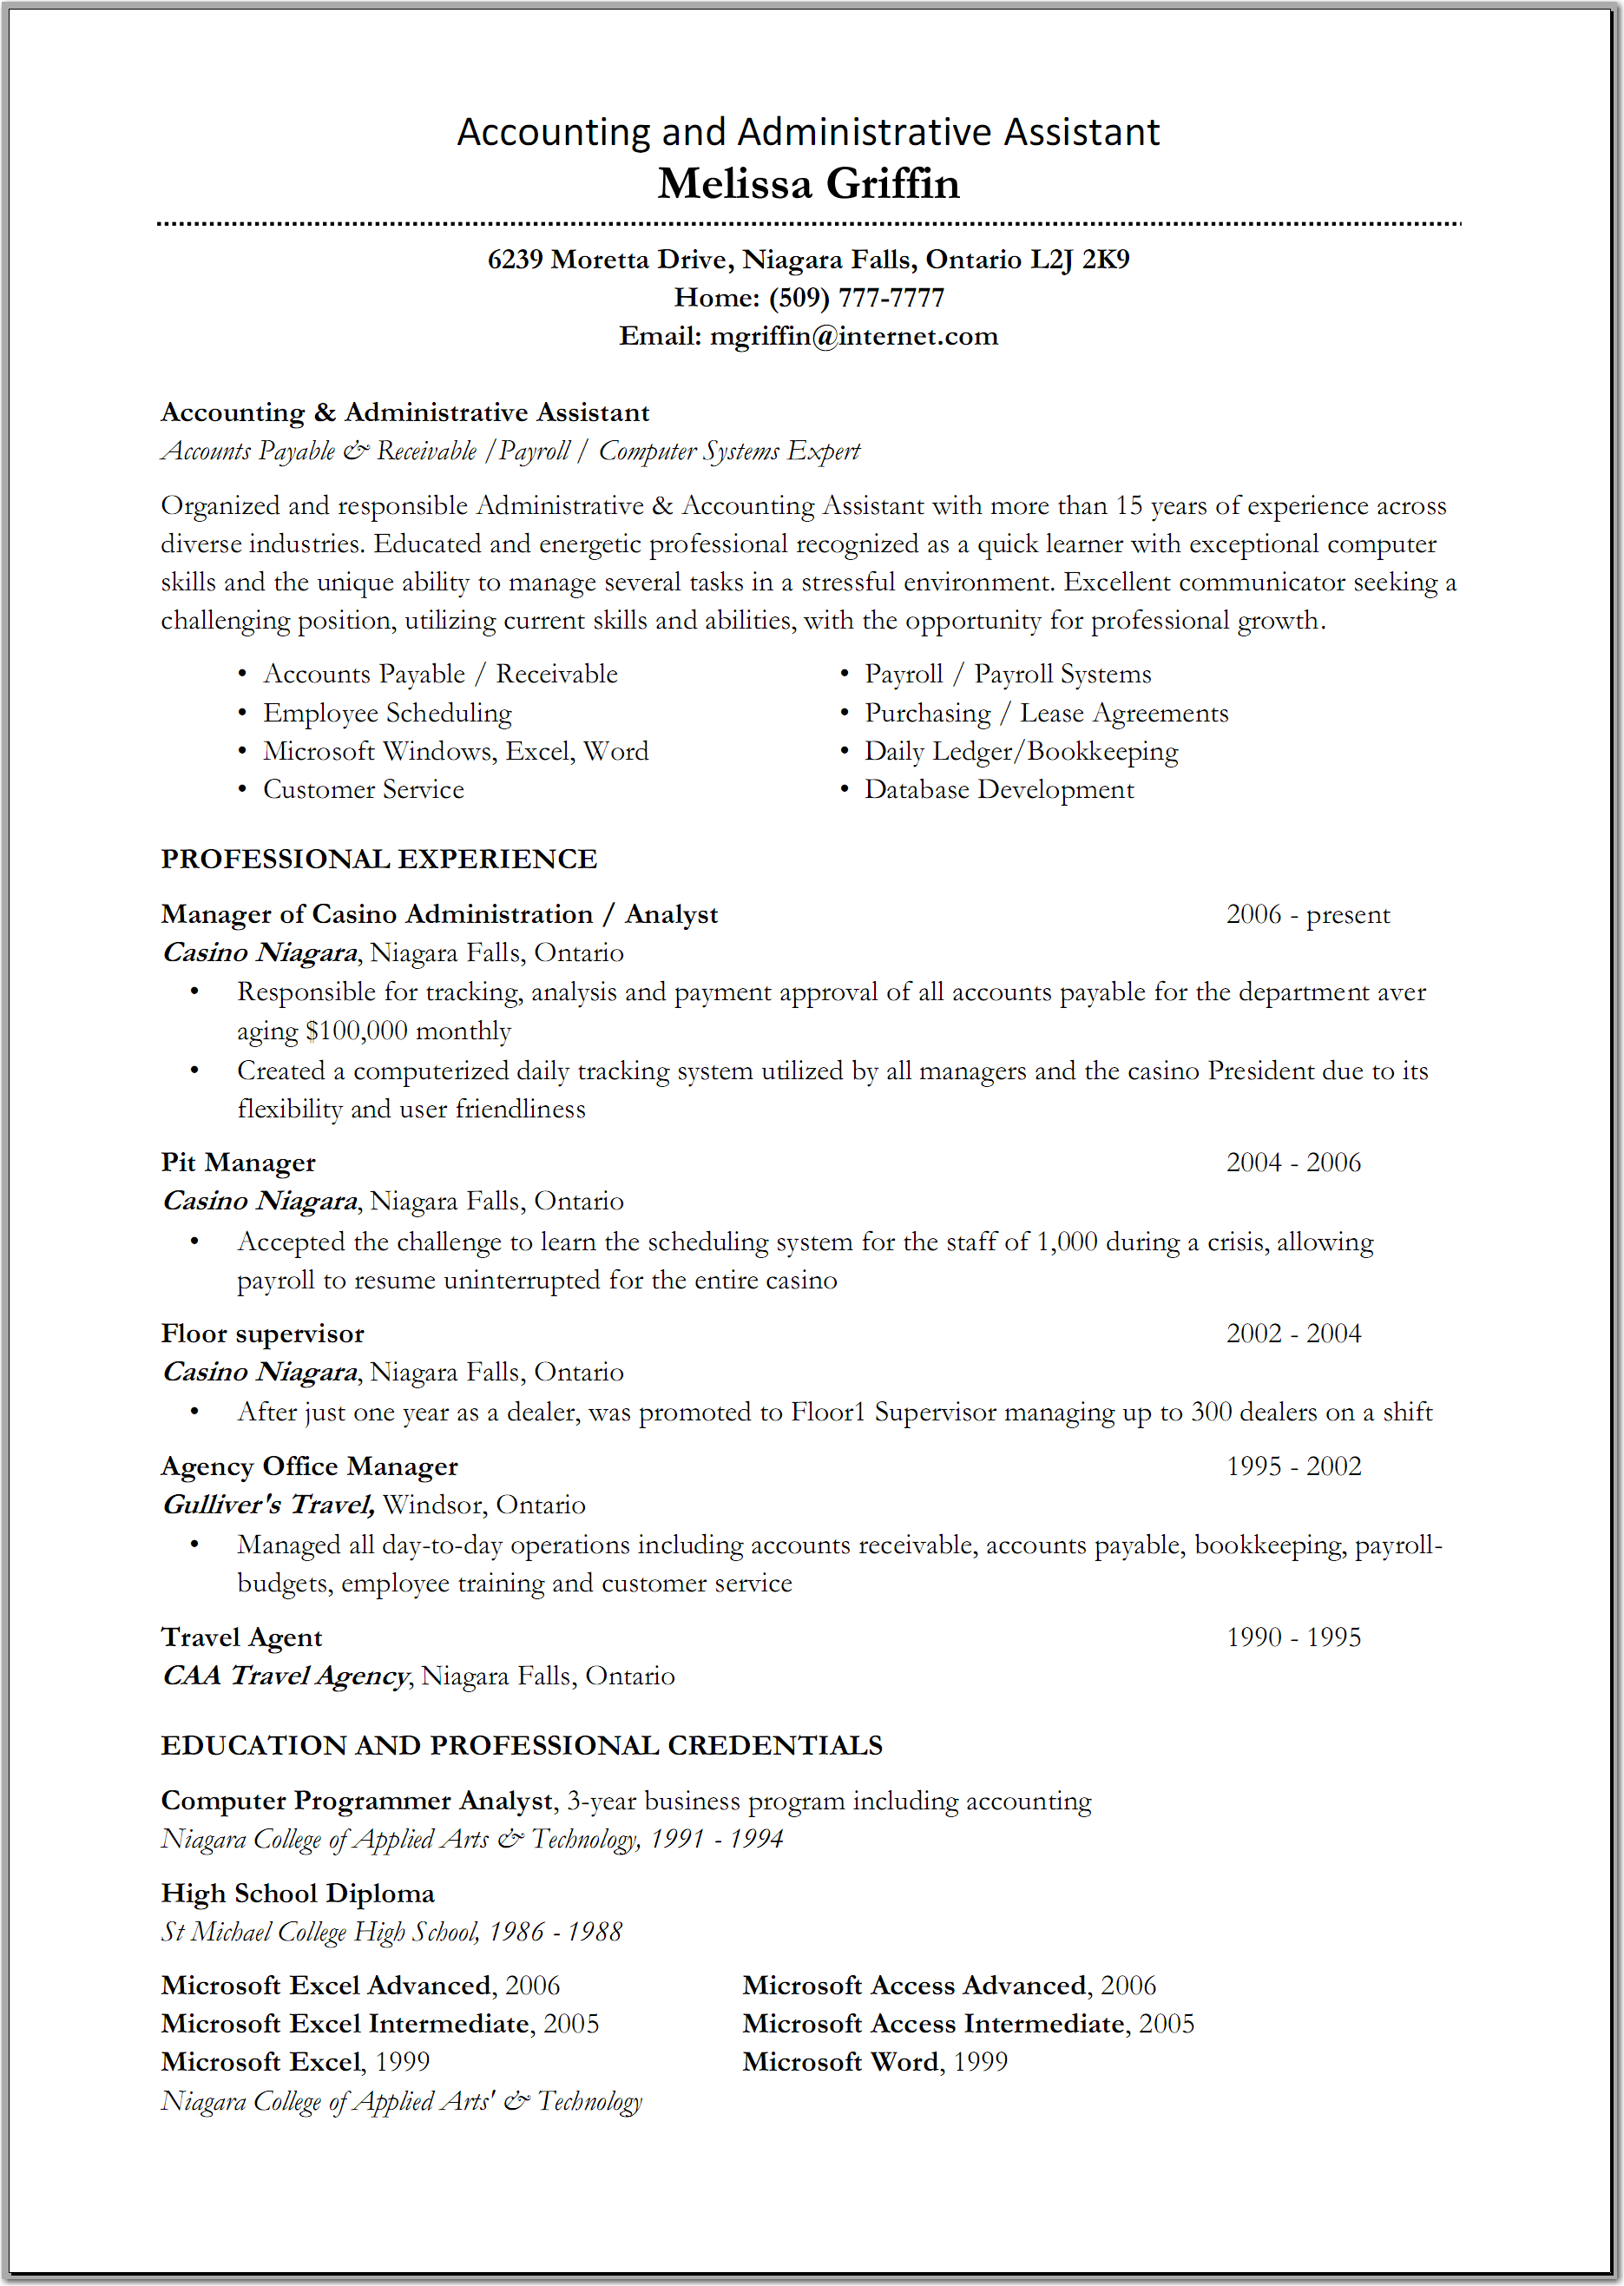 Administrative Assistant Resume Summary Great Administrative Assistant Resumes Accounting And